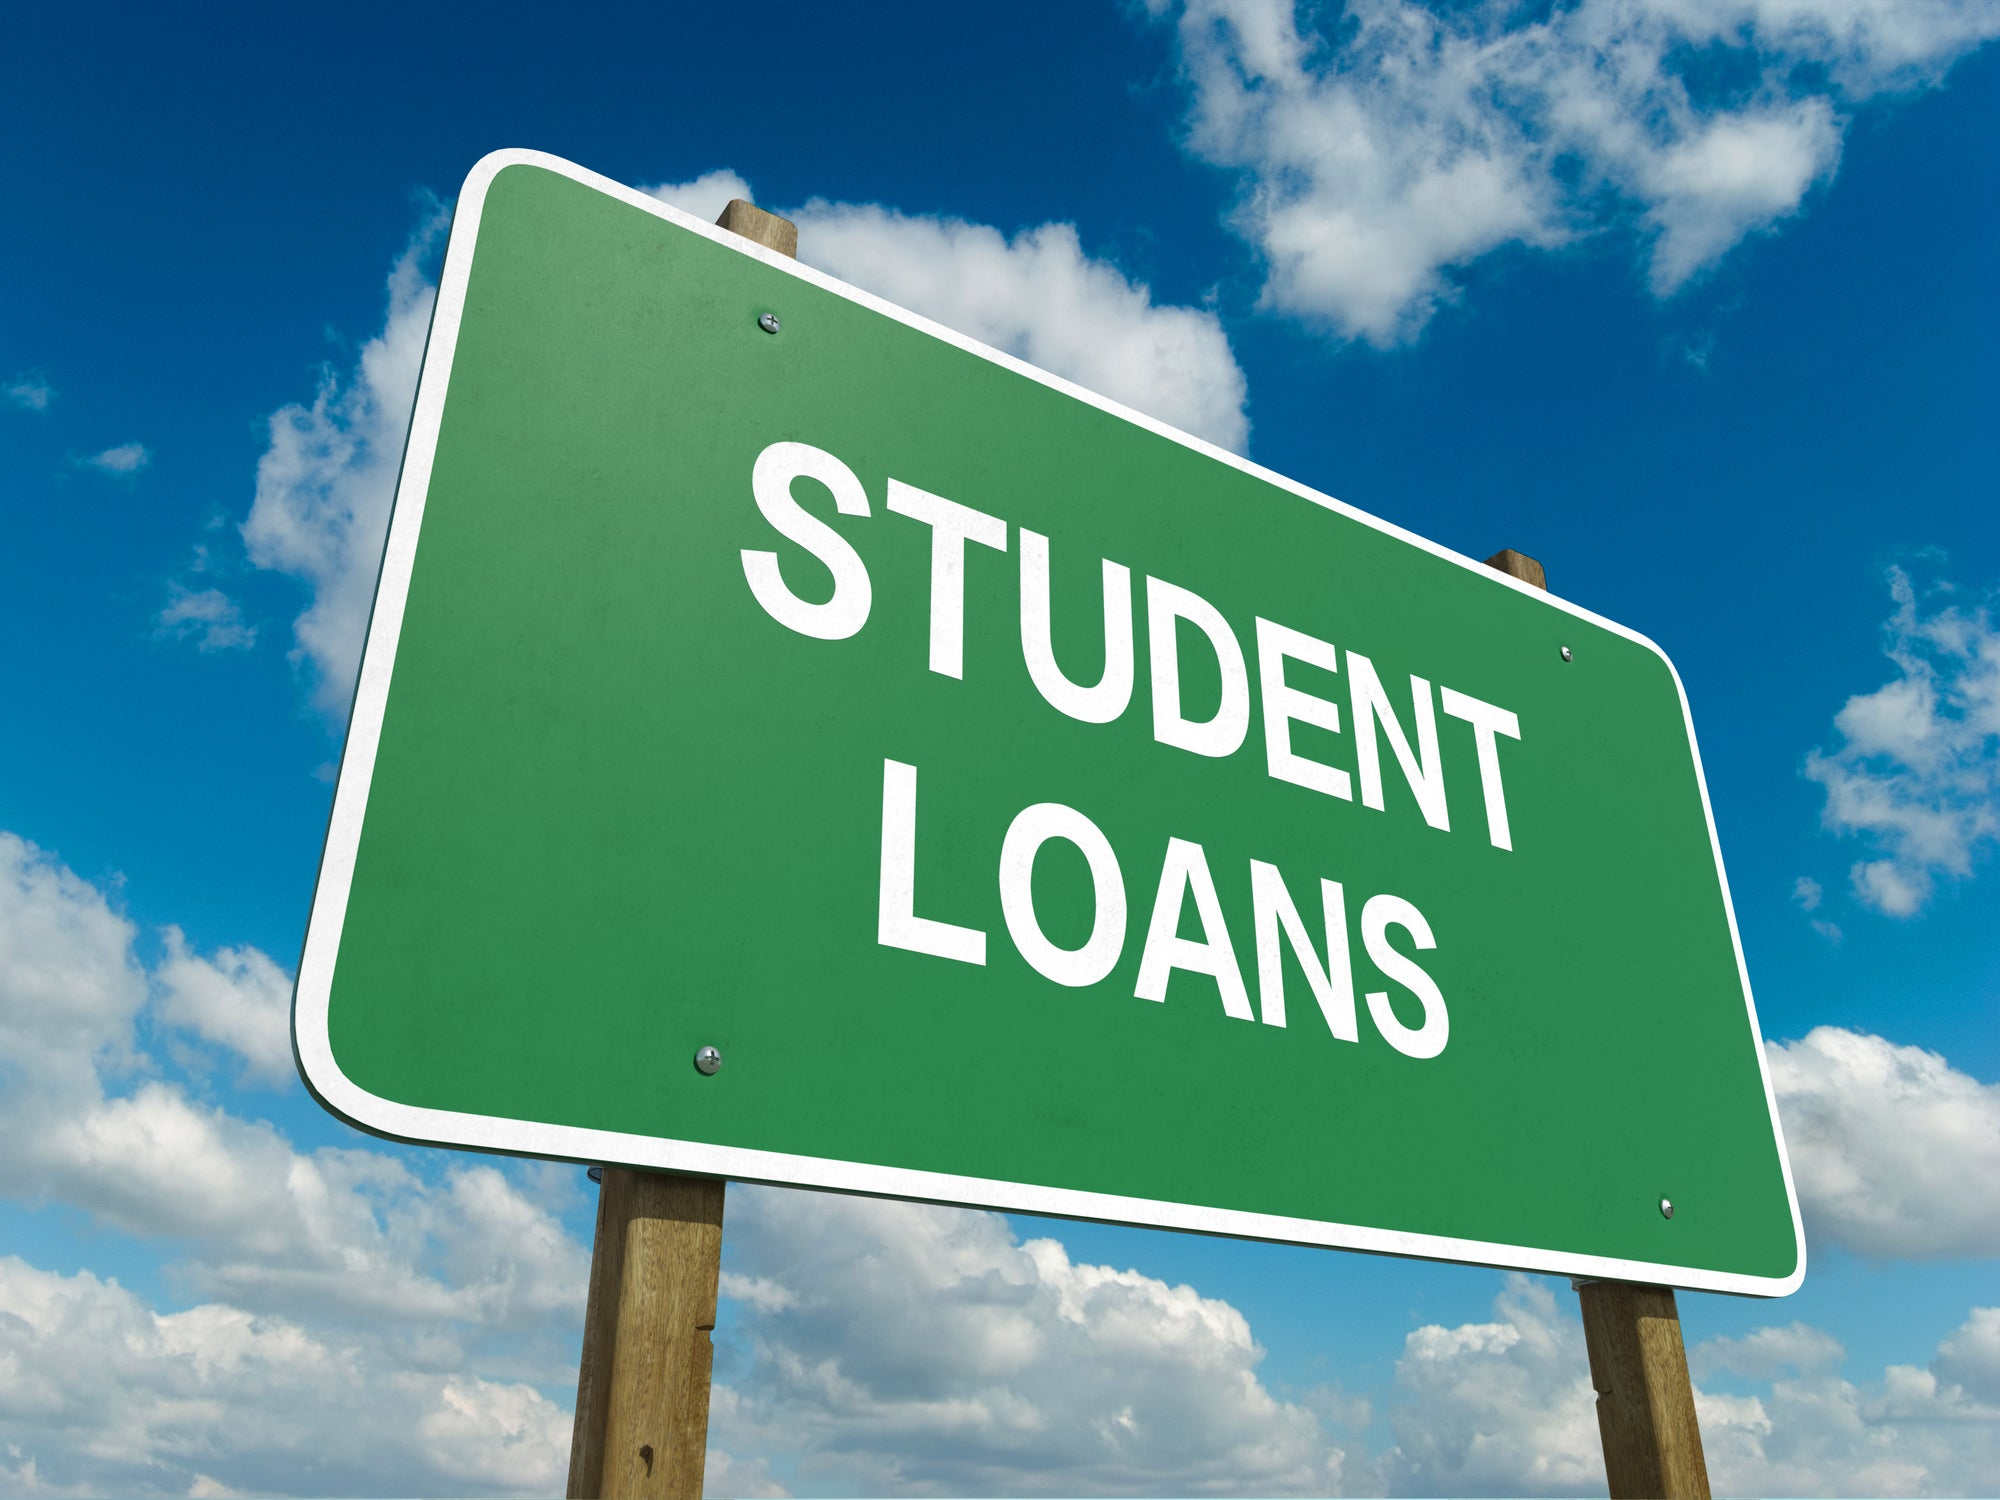 Large green sign reading Student Loans, with a cloudy sky in the background.